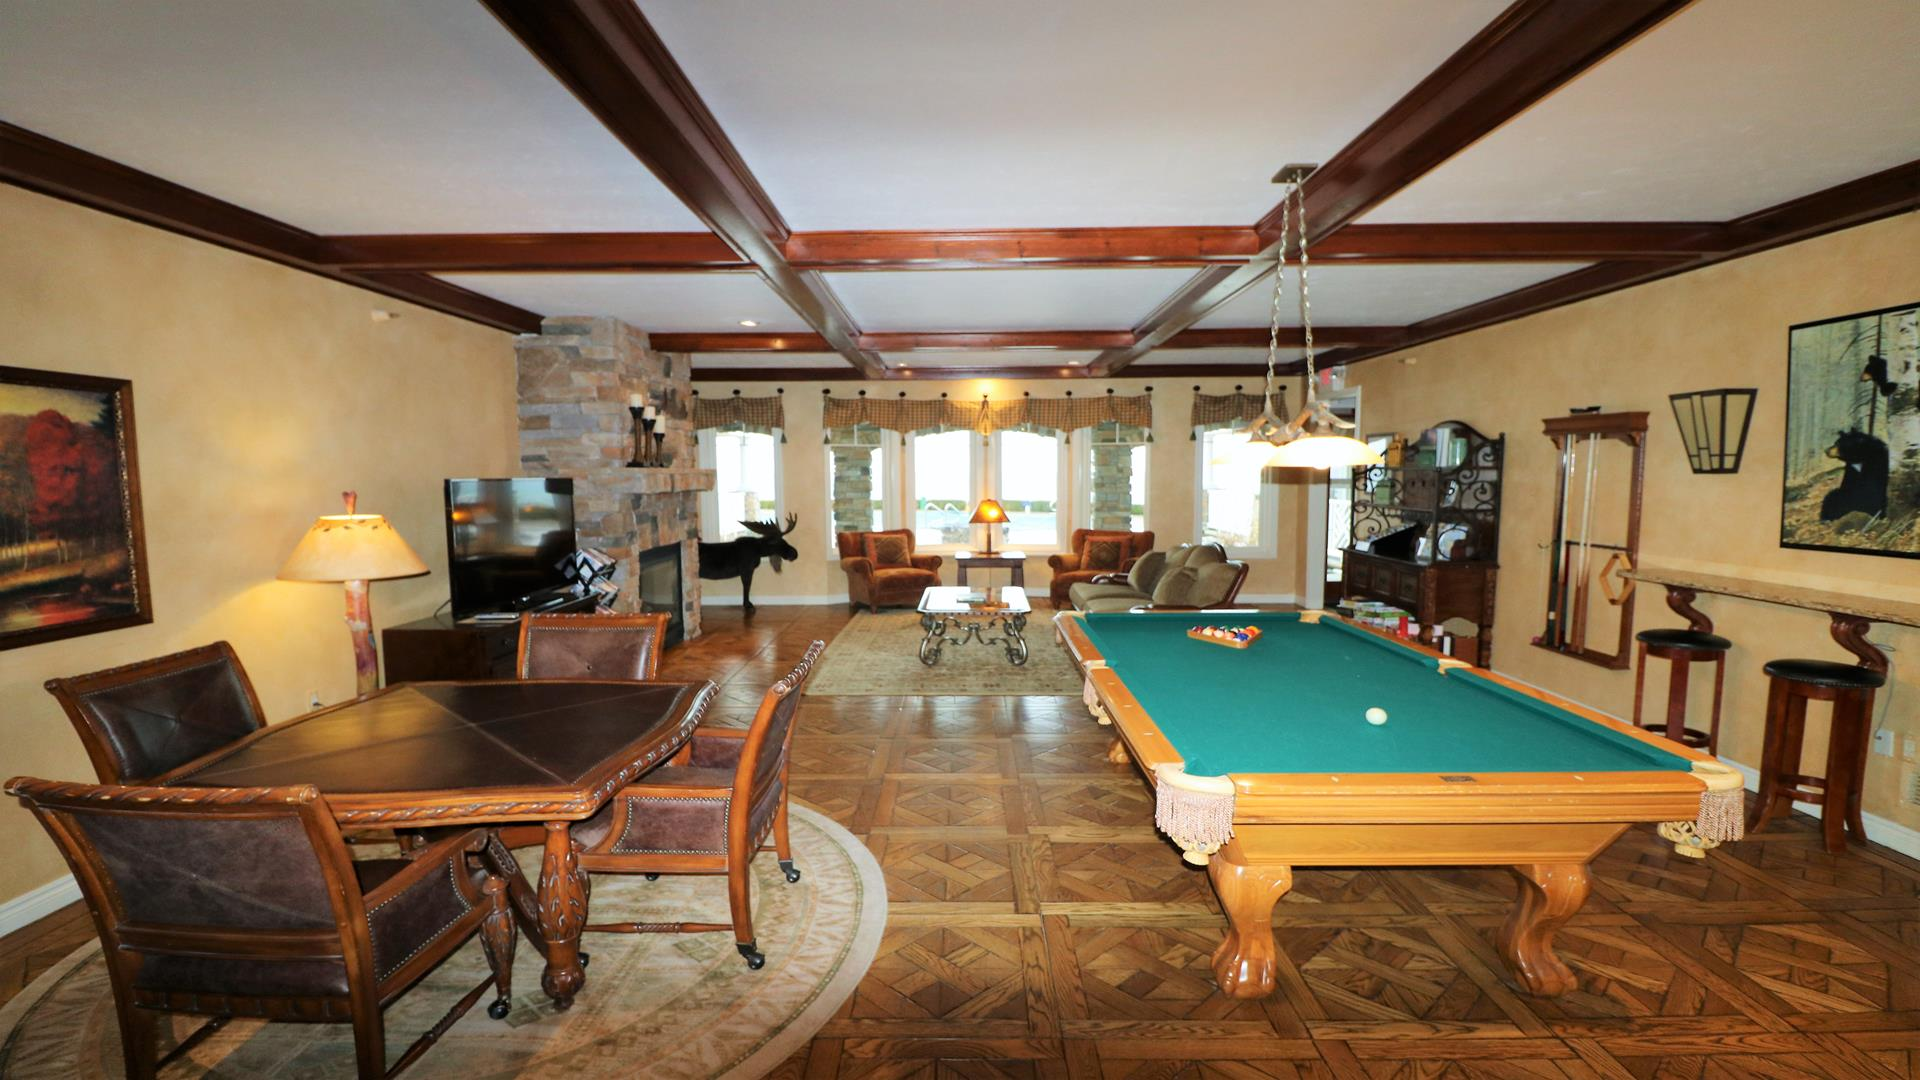 Clubhouse kitchenette, billiard and pool tables